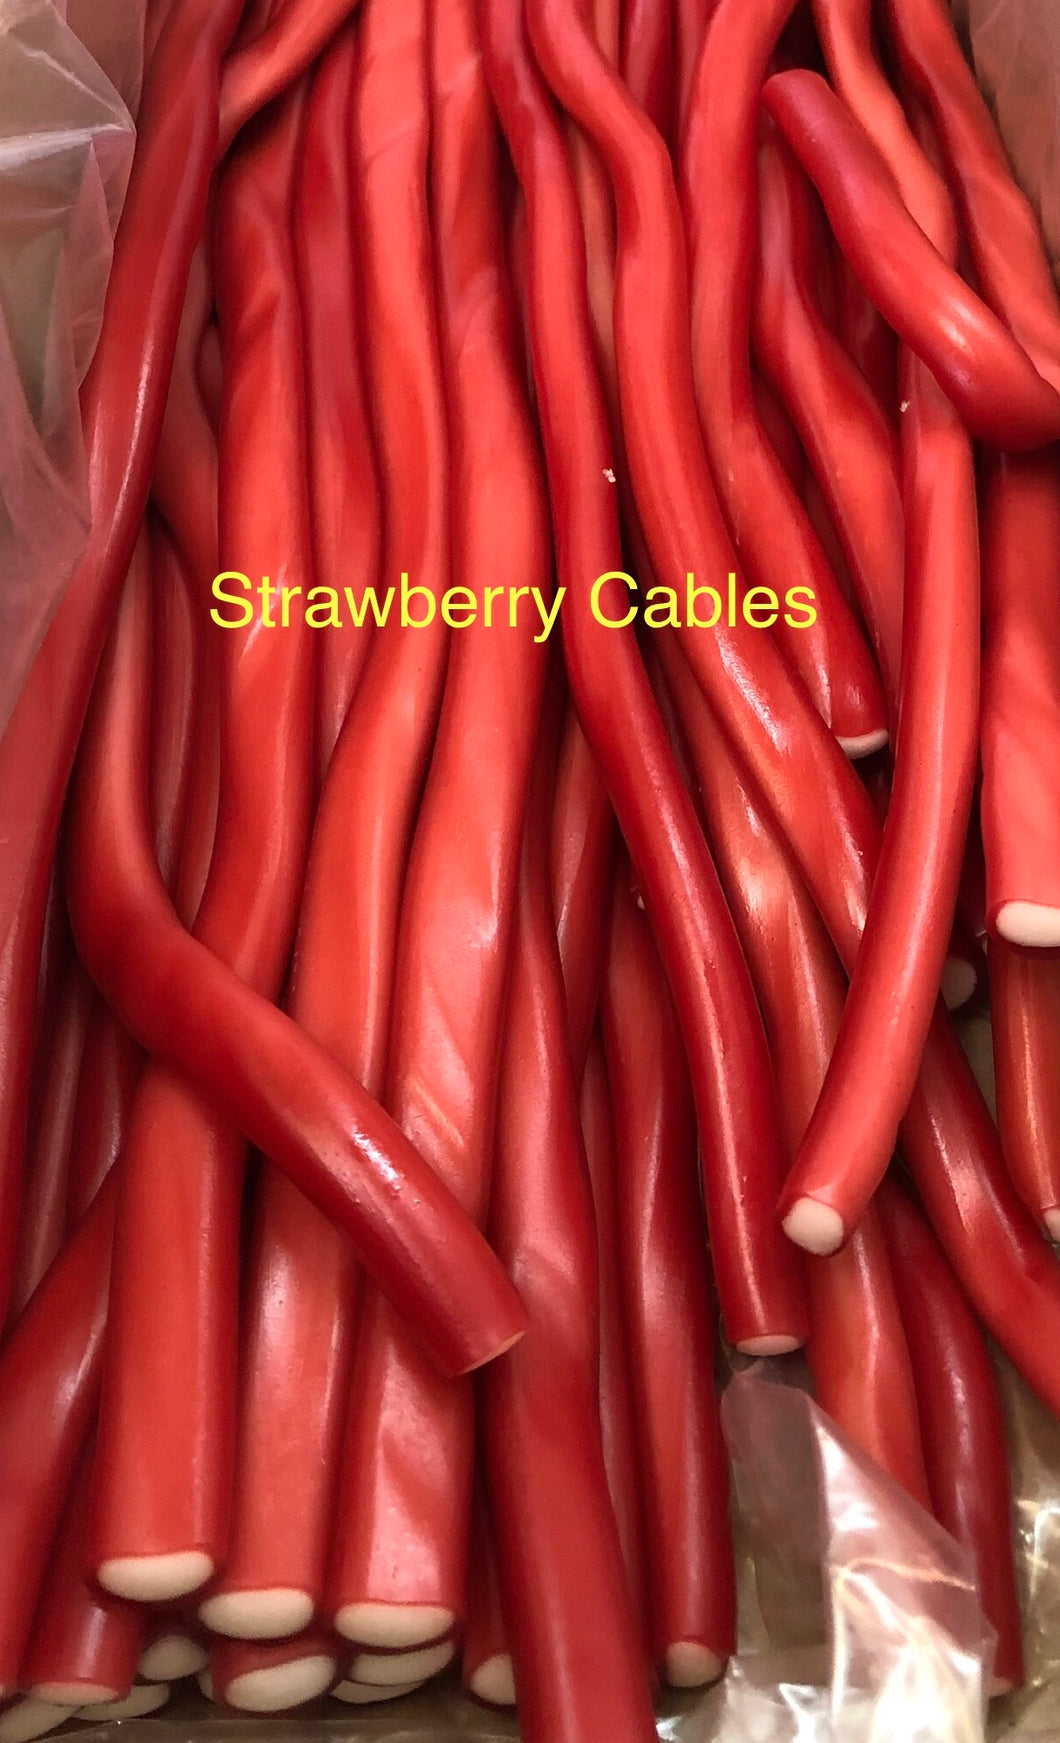 Strawberry Cables